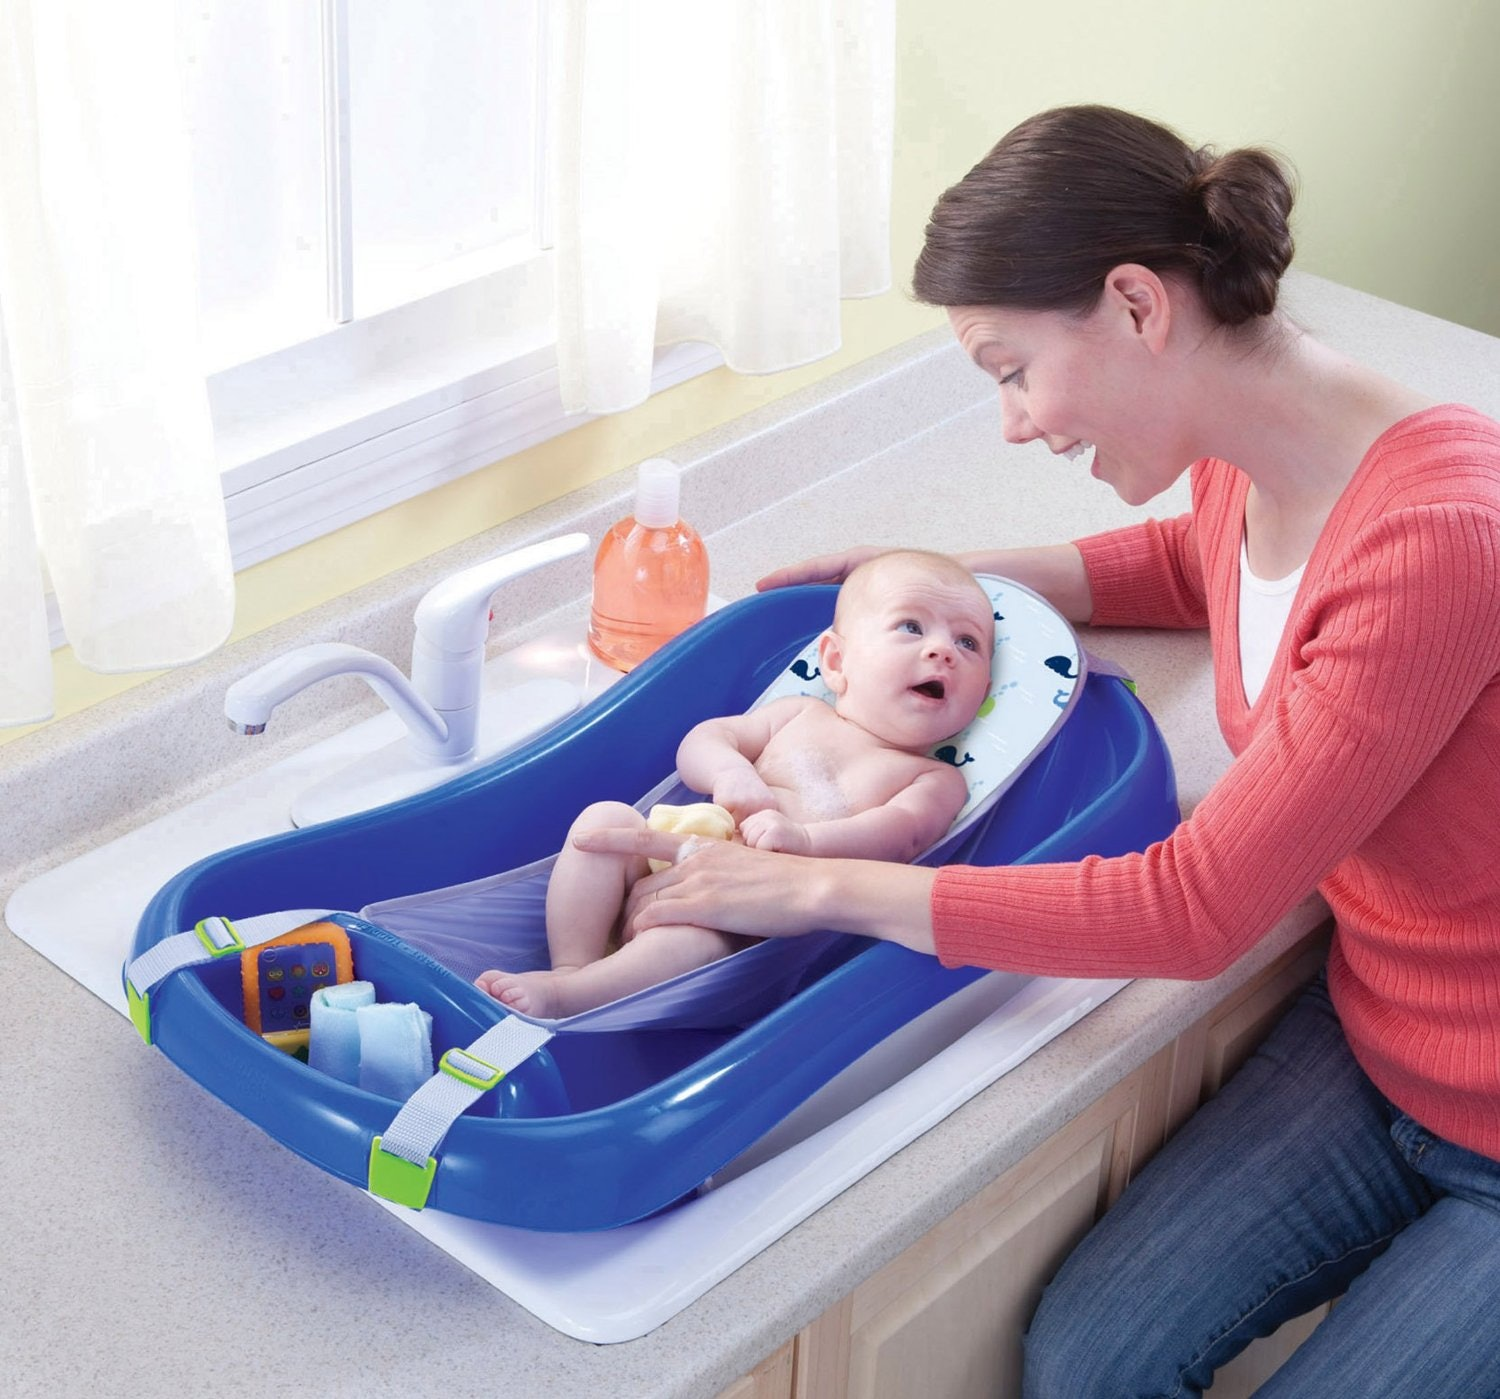 20 Genius Baby & Toddler Products Trending With Moms